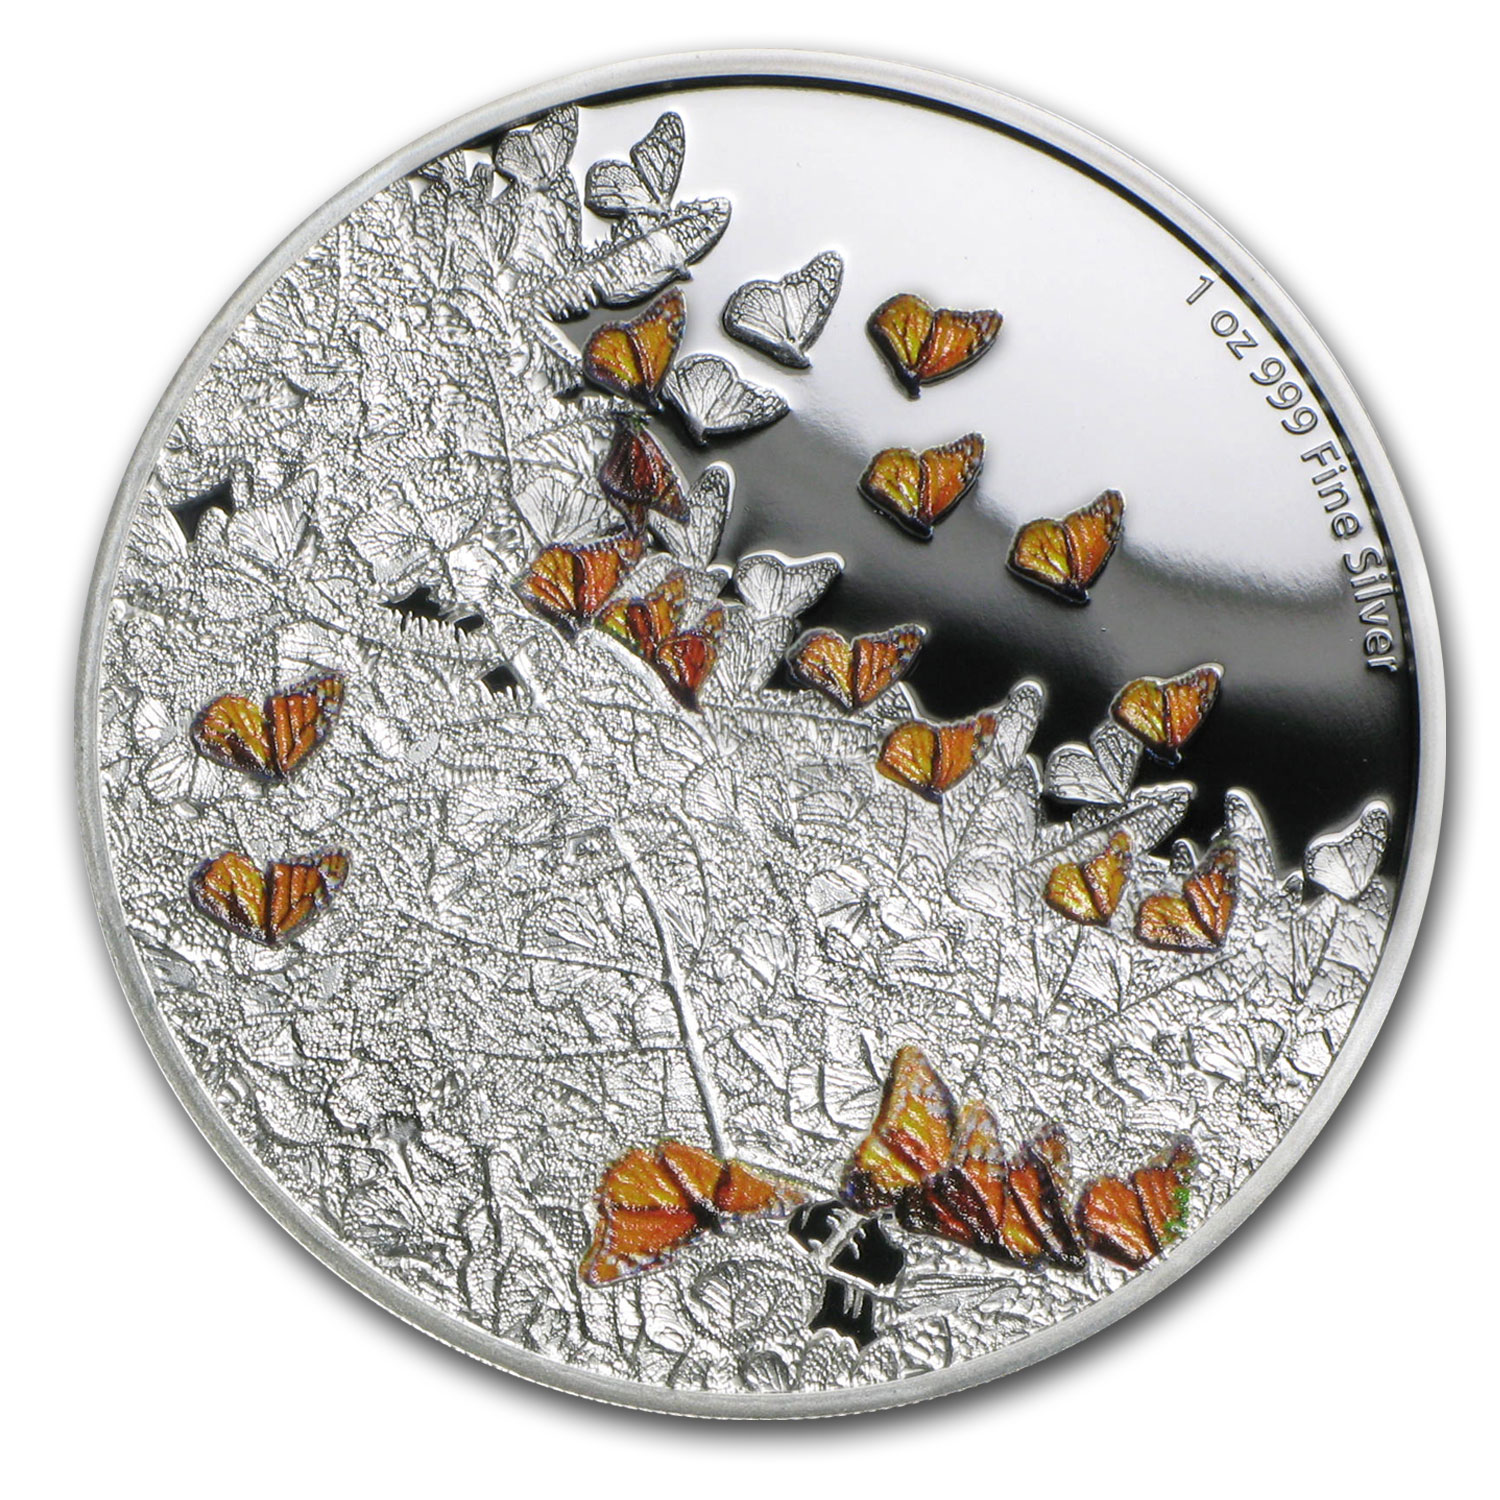 2016 Niue 1 oz Silver Great Migrations Monarch Butterfly Proof